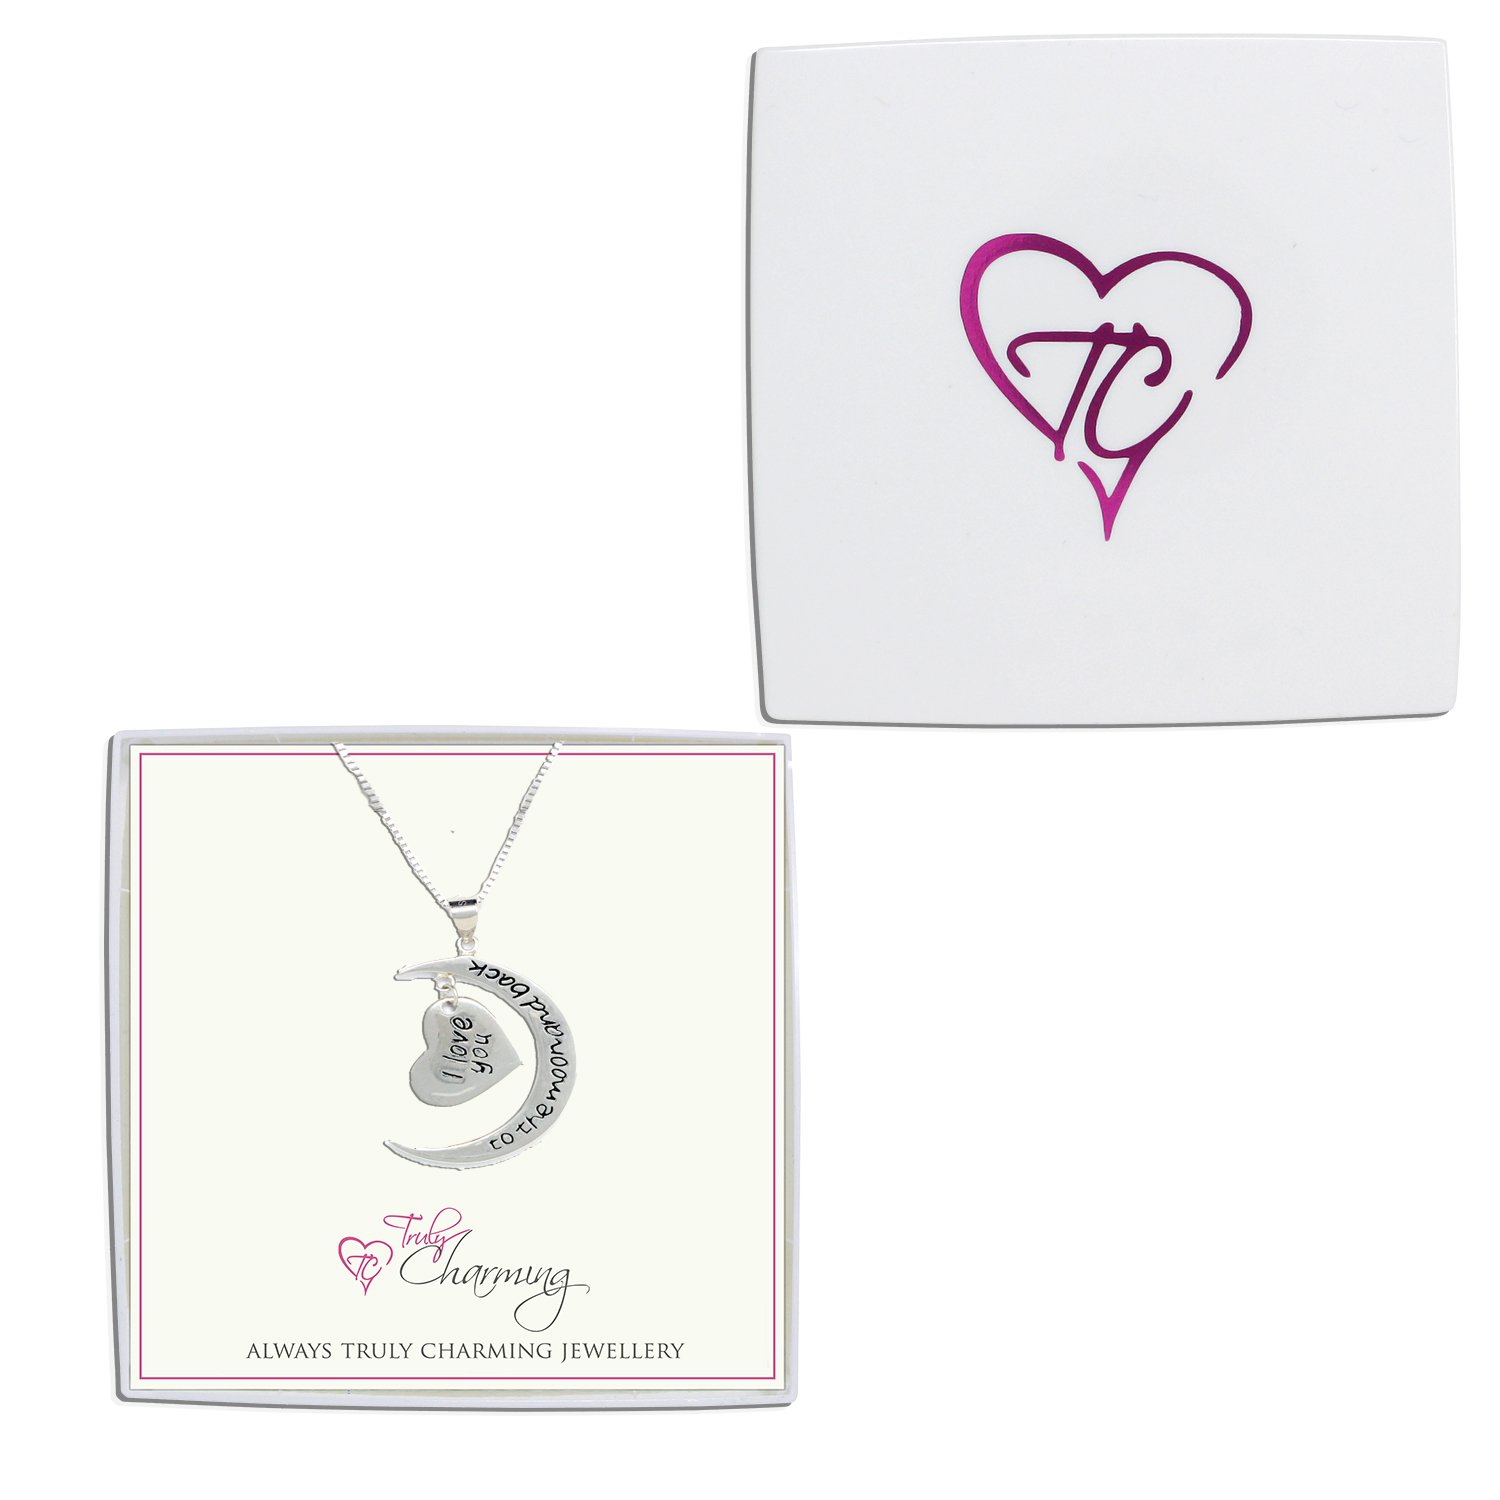 Truly Charming 925 Sterling Silver I Love You To The Moon And Back 2 Piece Pendant Necklace 18'' Chain Gift Boxed by Truly Charming (Image #2)